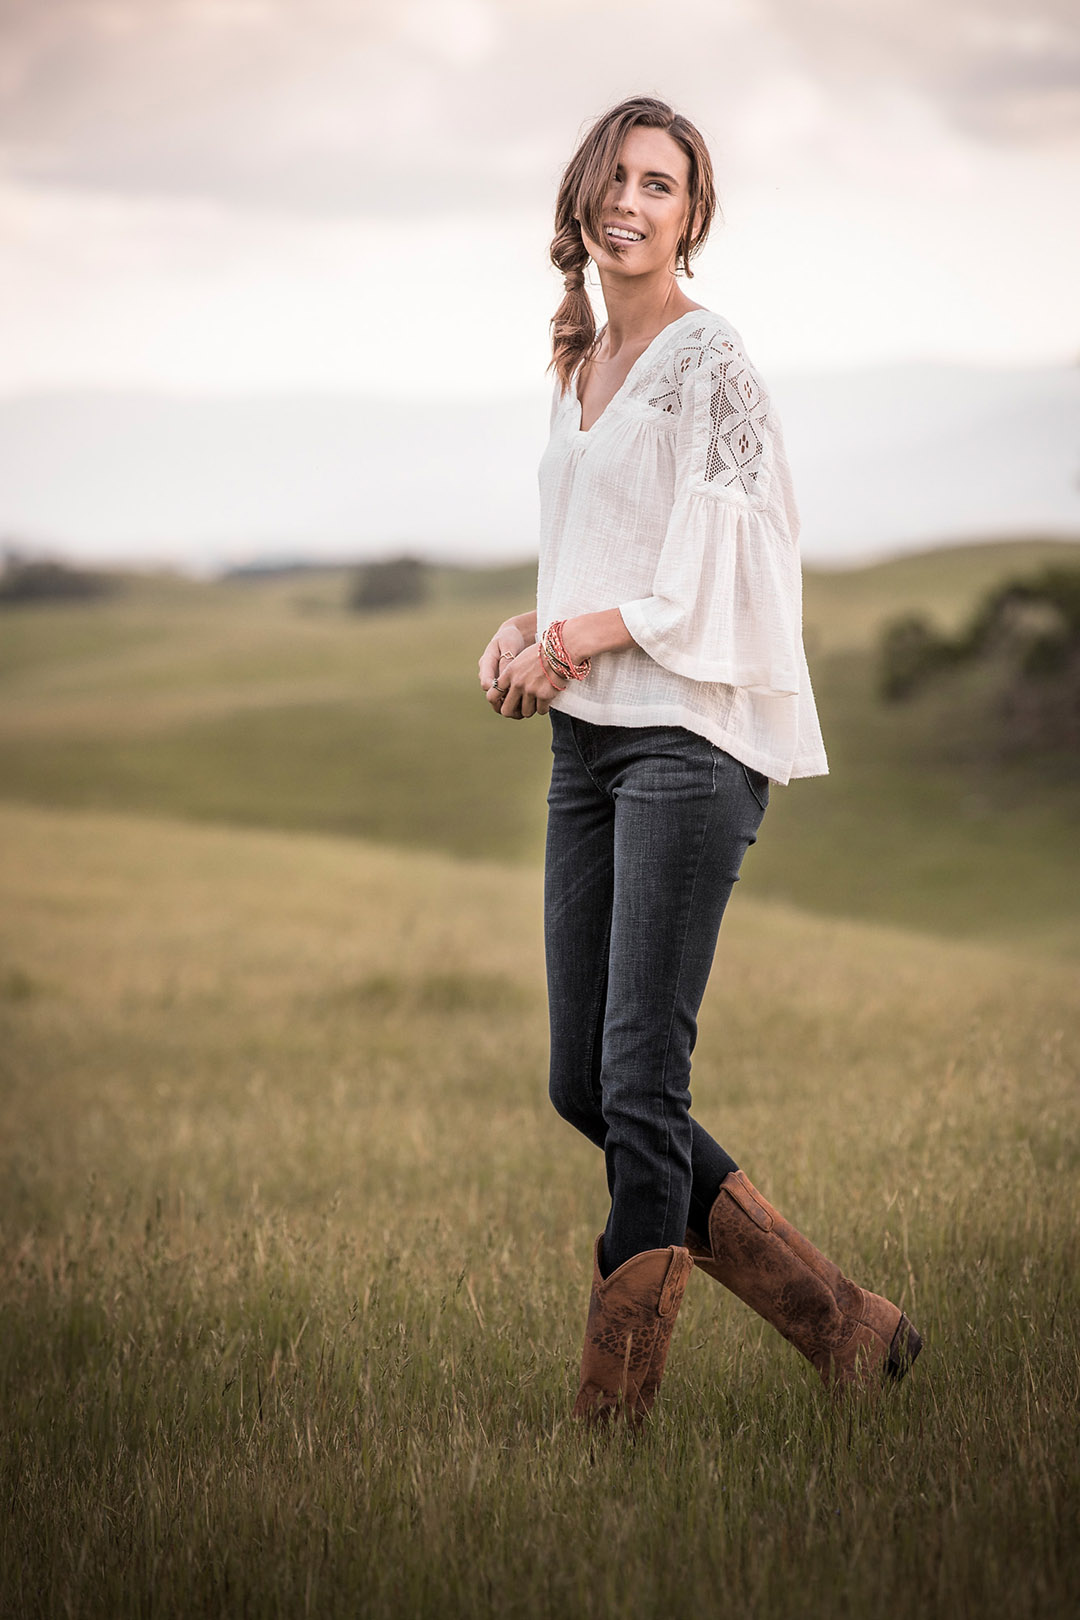 Western Lifestyle And Western Fashion Image Of A Woman On A Ranch At Sunset With Western Clothing.